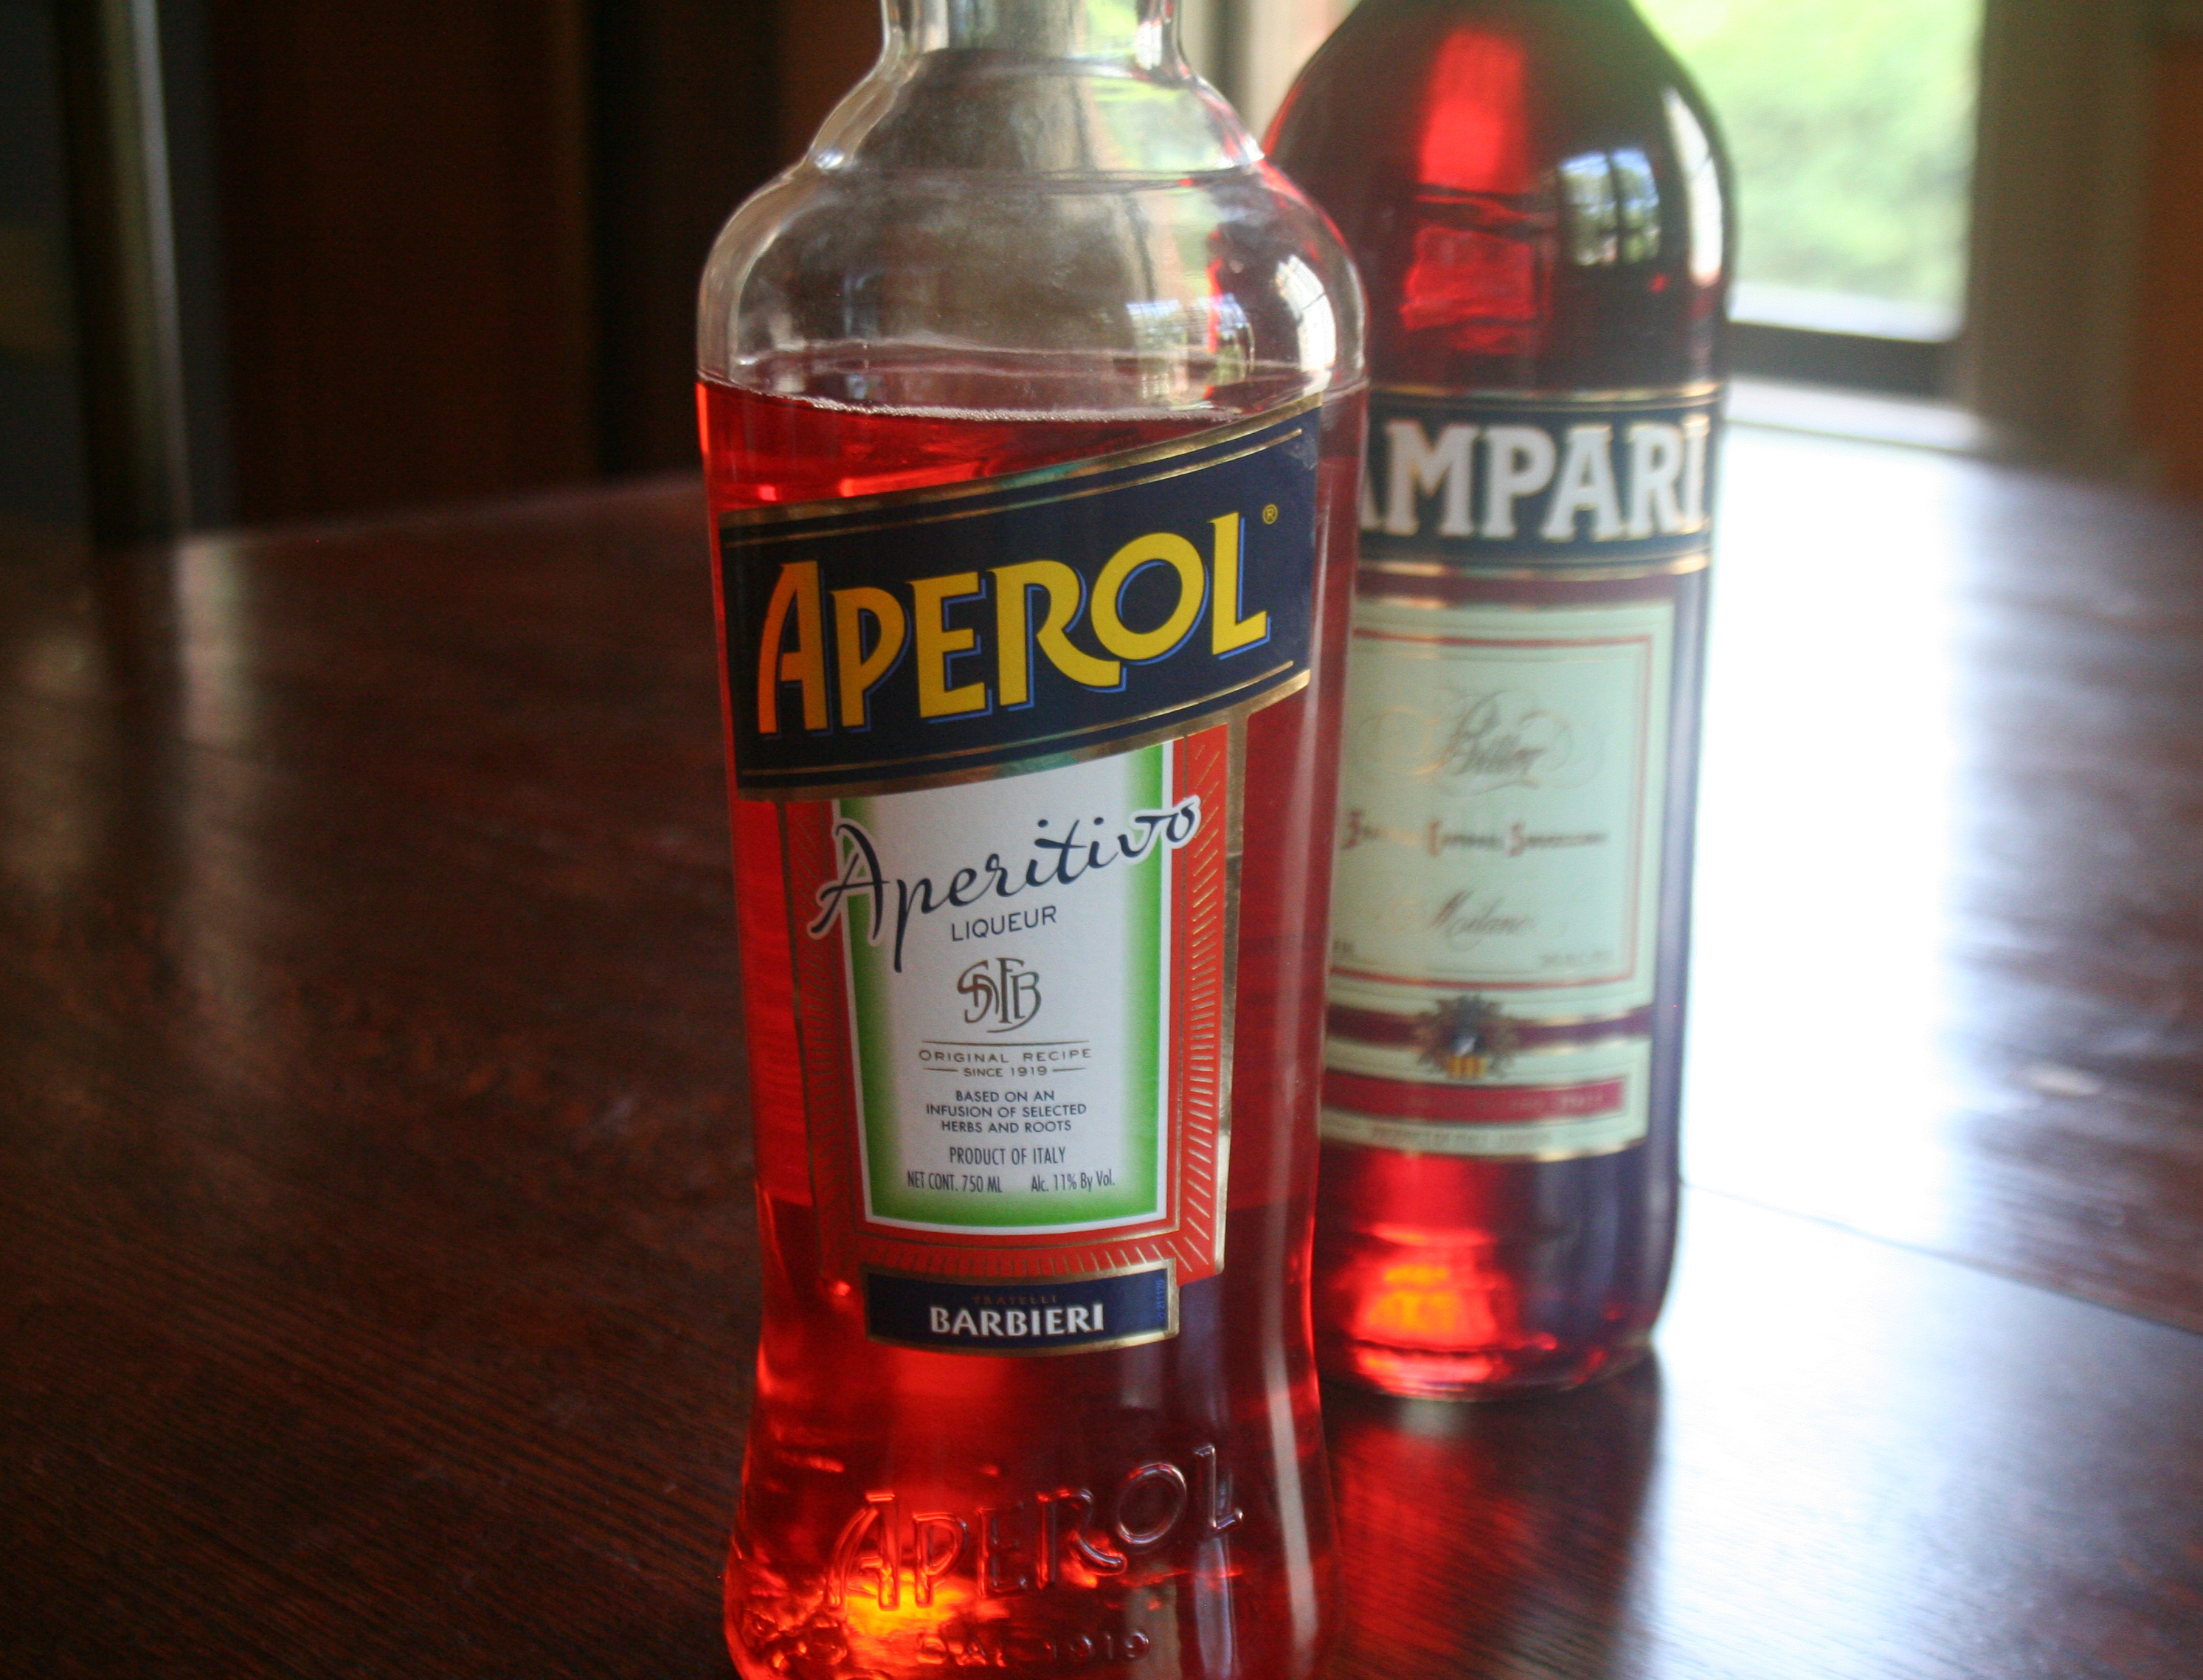 Aperitvo liqueurs from Italy - Aperol and Campari